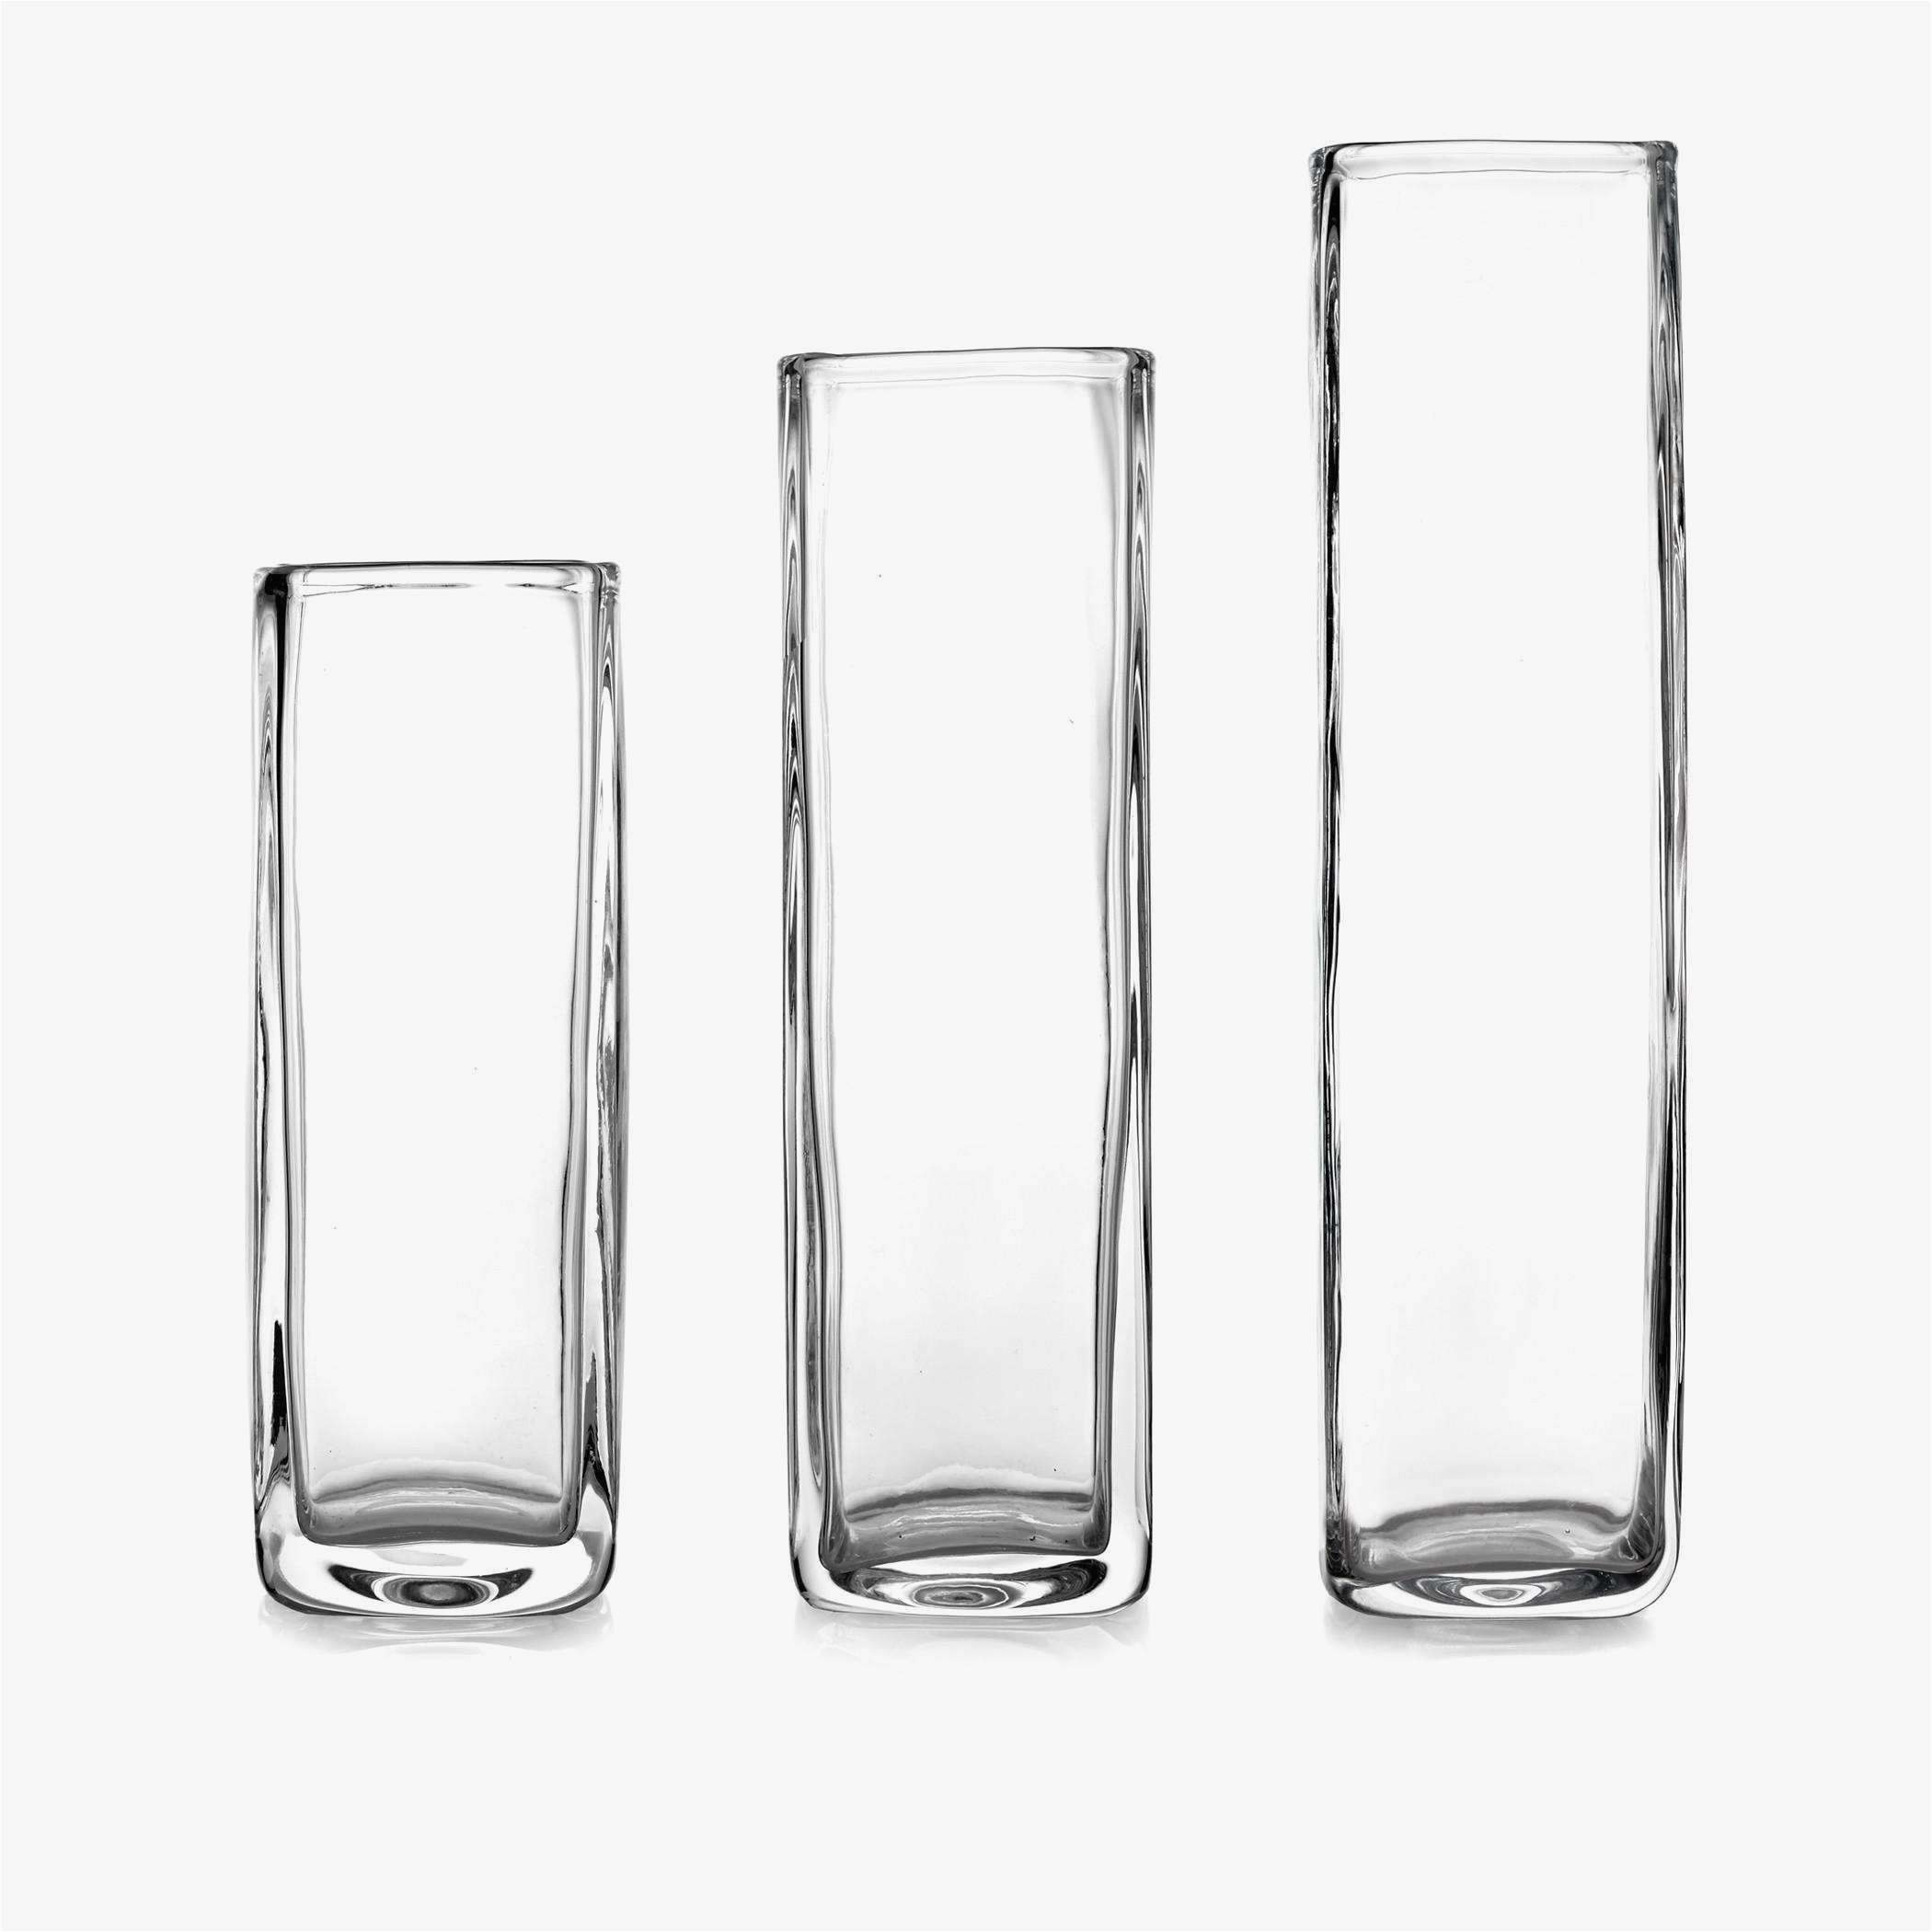 18 tall cylinder vase of wedding arrangements trending h vases artificial flower arrangements for wedding arrangements contemporary glass wedding centerpieces inspirational living room tall glass opinion